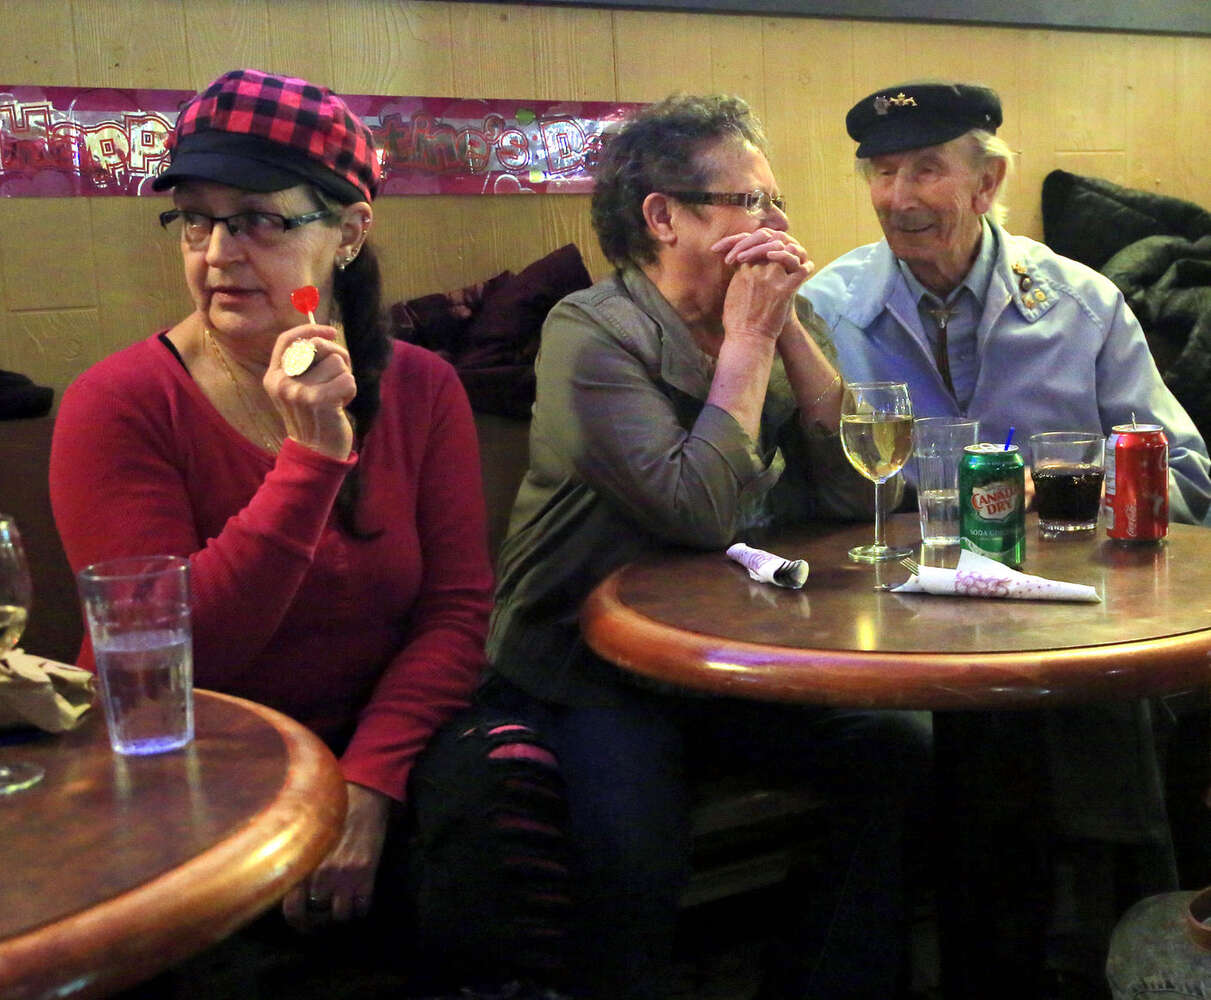 Patrons chat with friends old and new in the beverage room at the Crystal. (Colin Corneau)